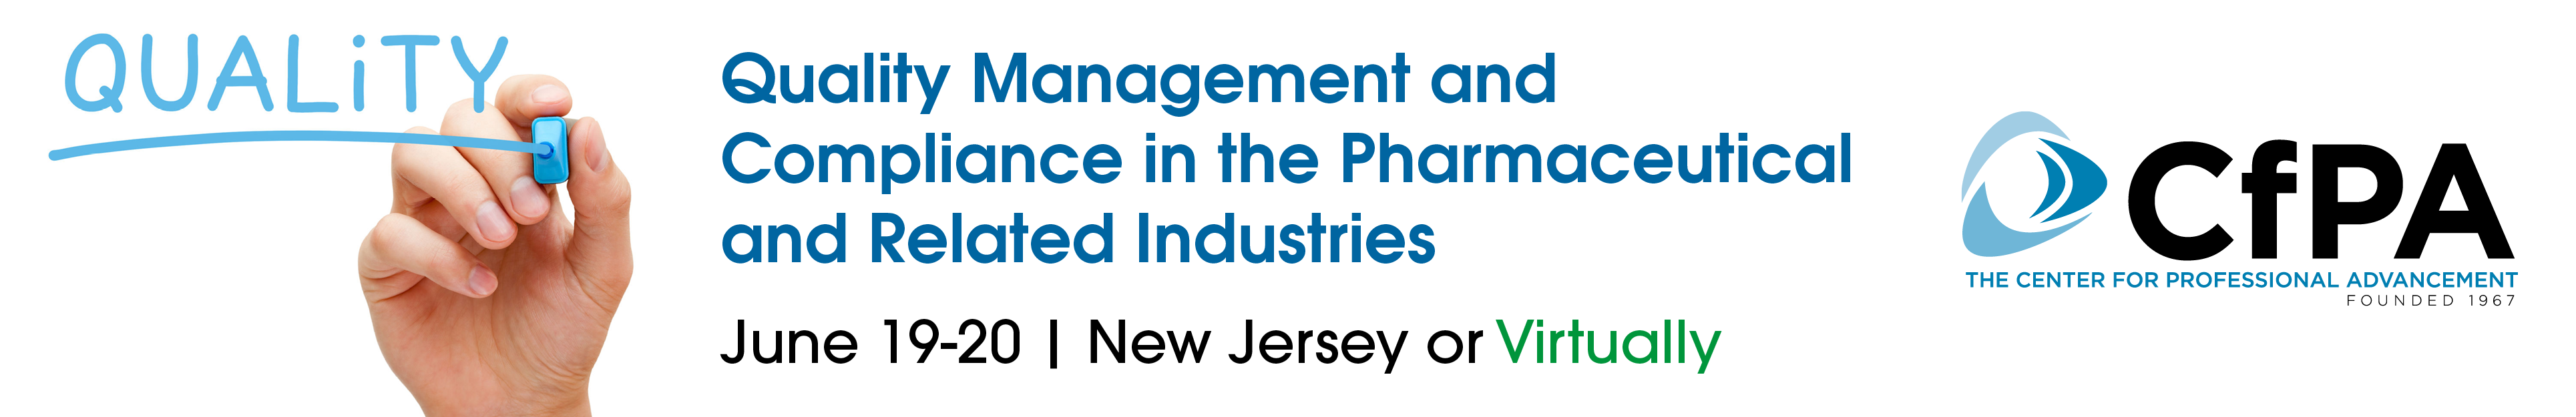 Quality Management and Compliance in the Pharmaceutical and Related Industries